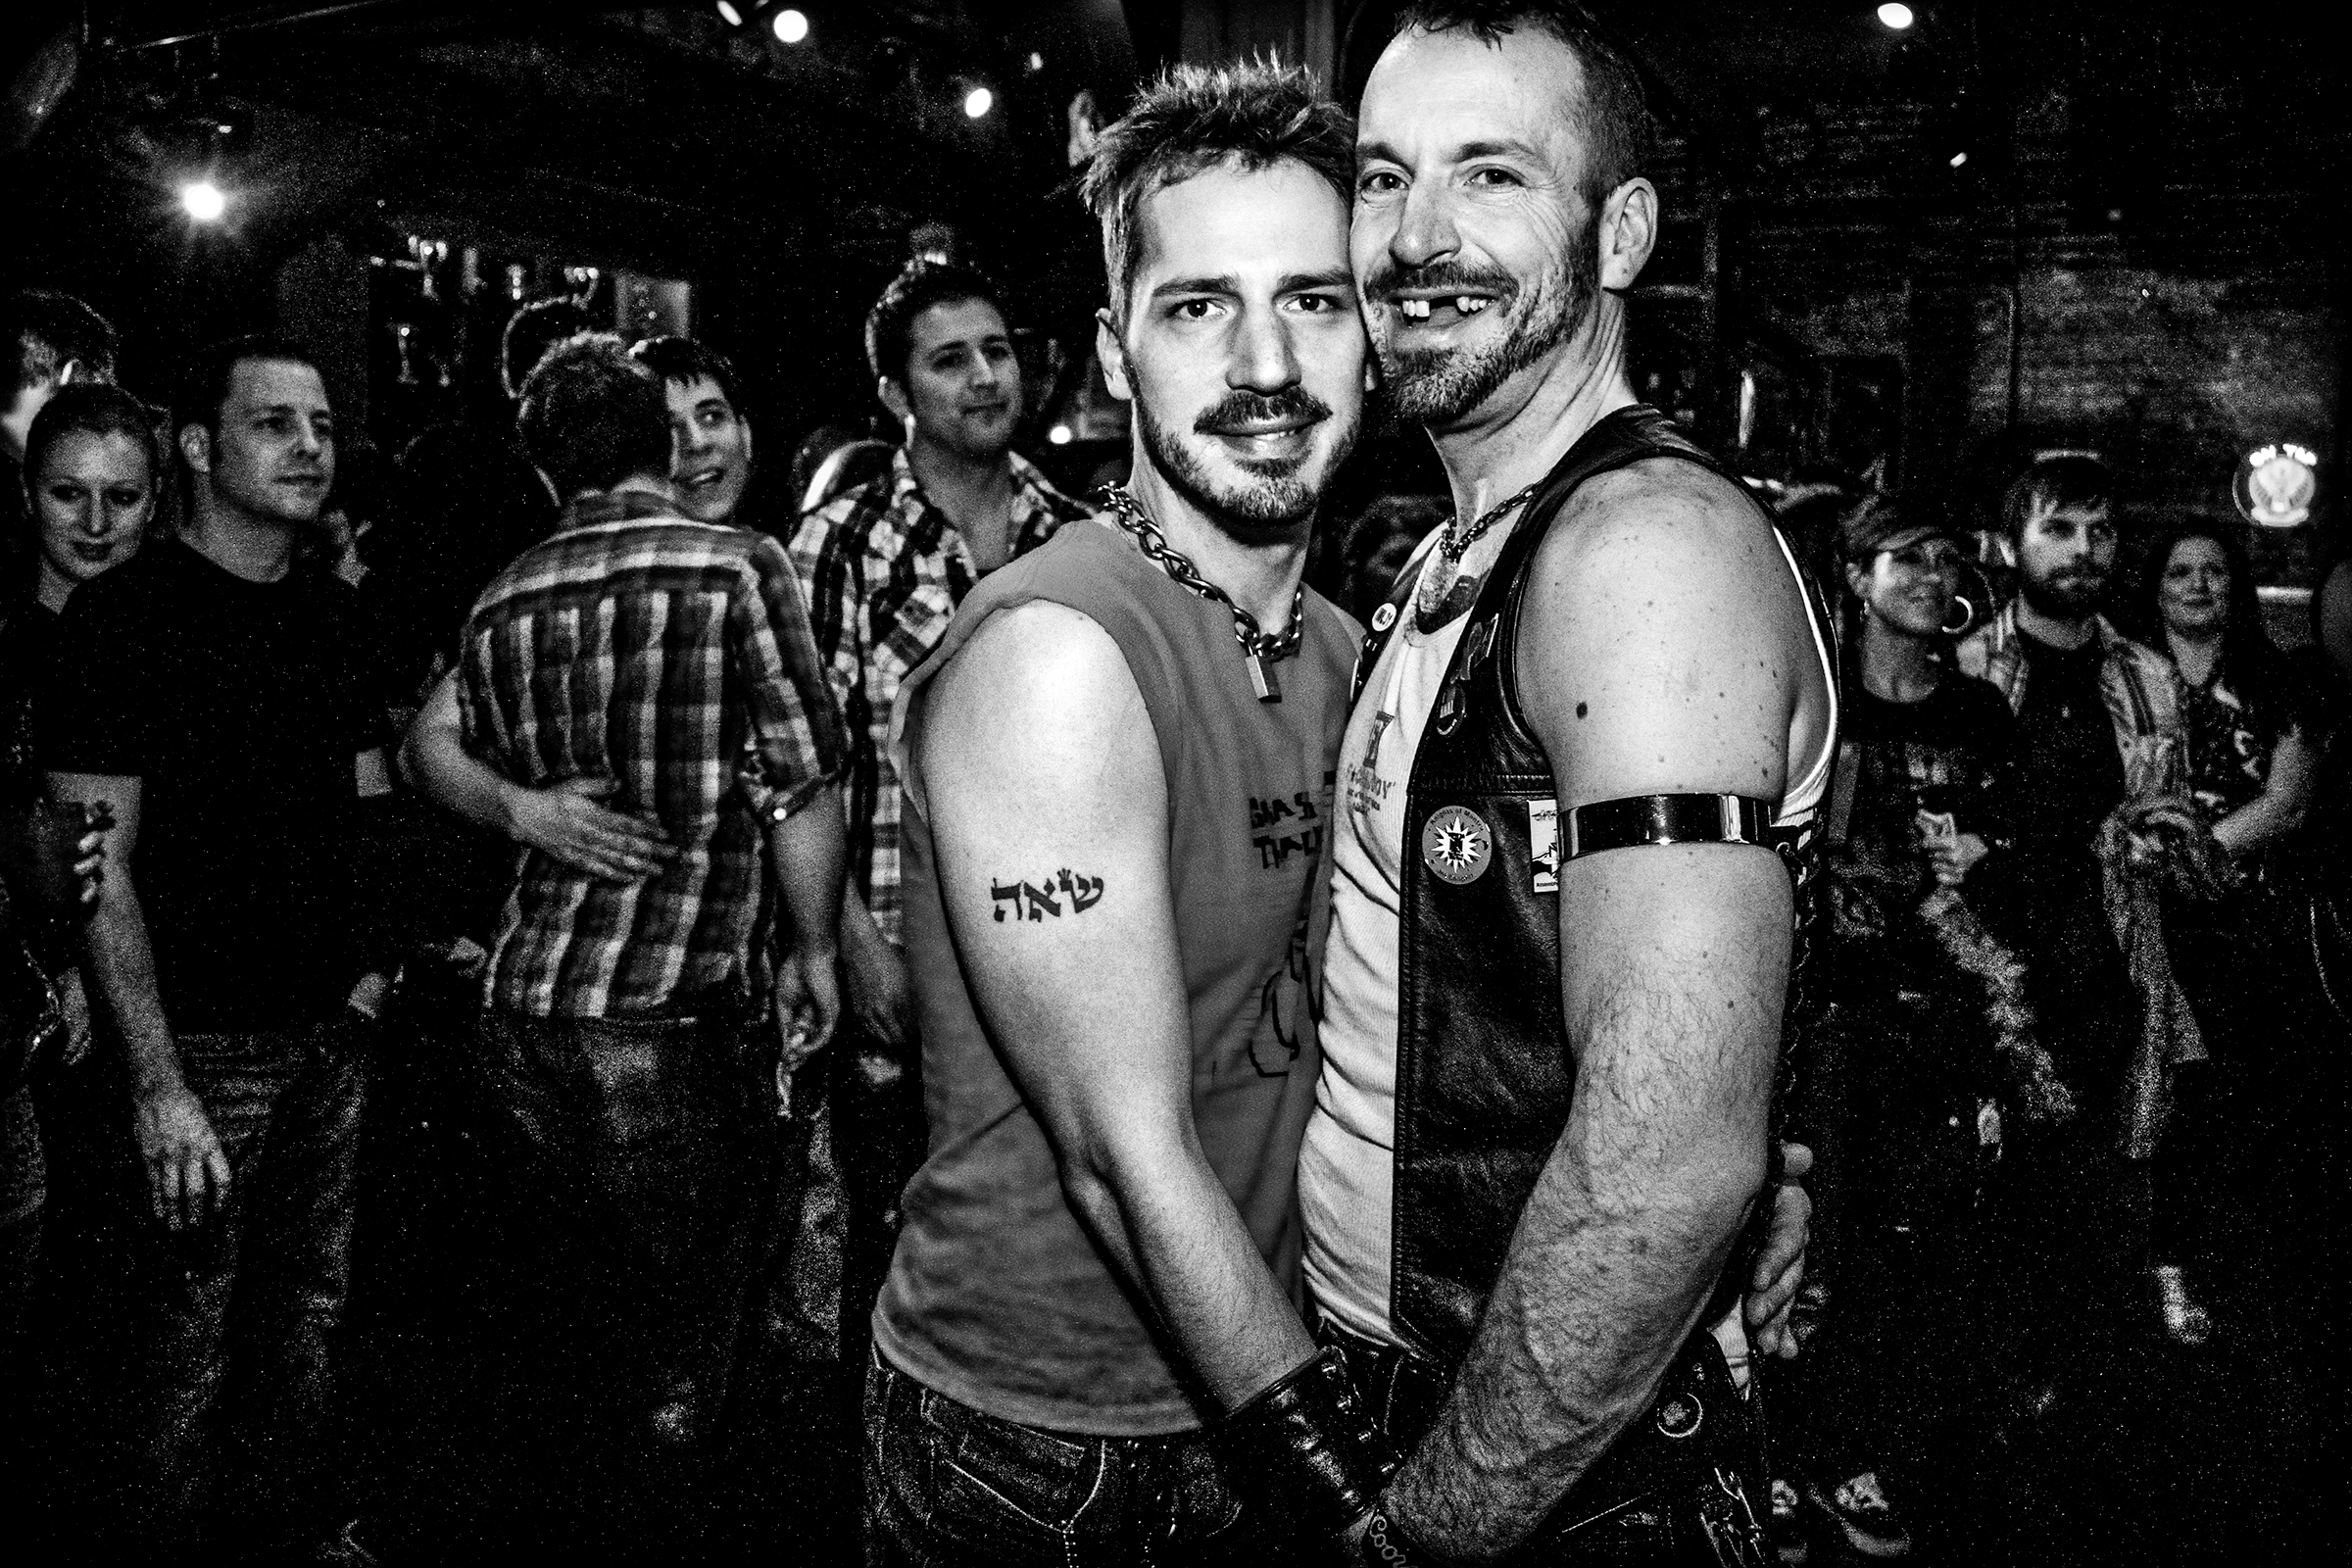 Two men hold hands at R Place on February 18th, 2011, in Seattle.